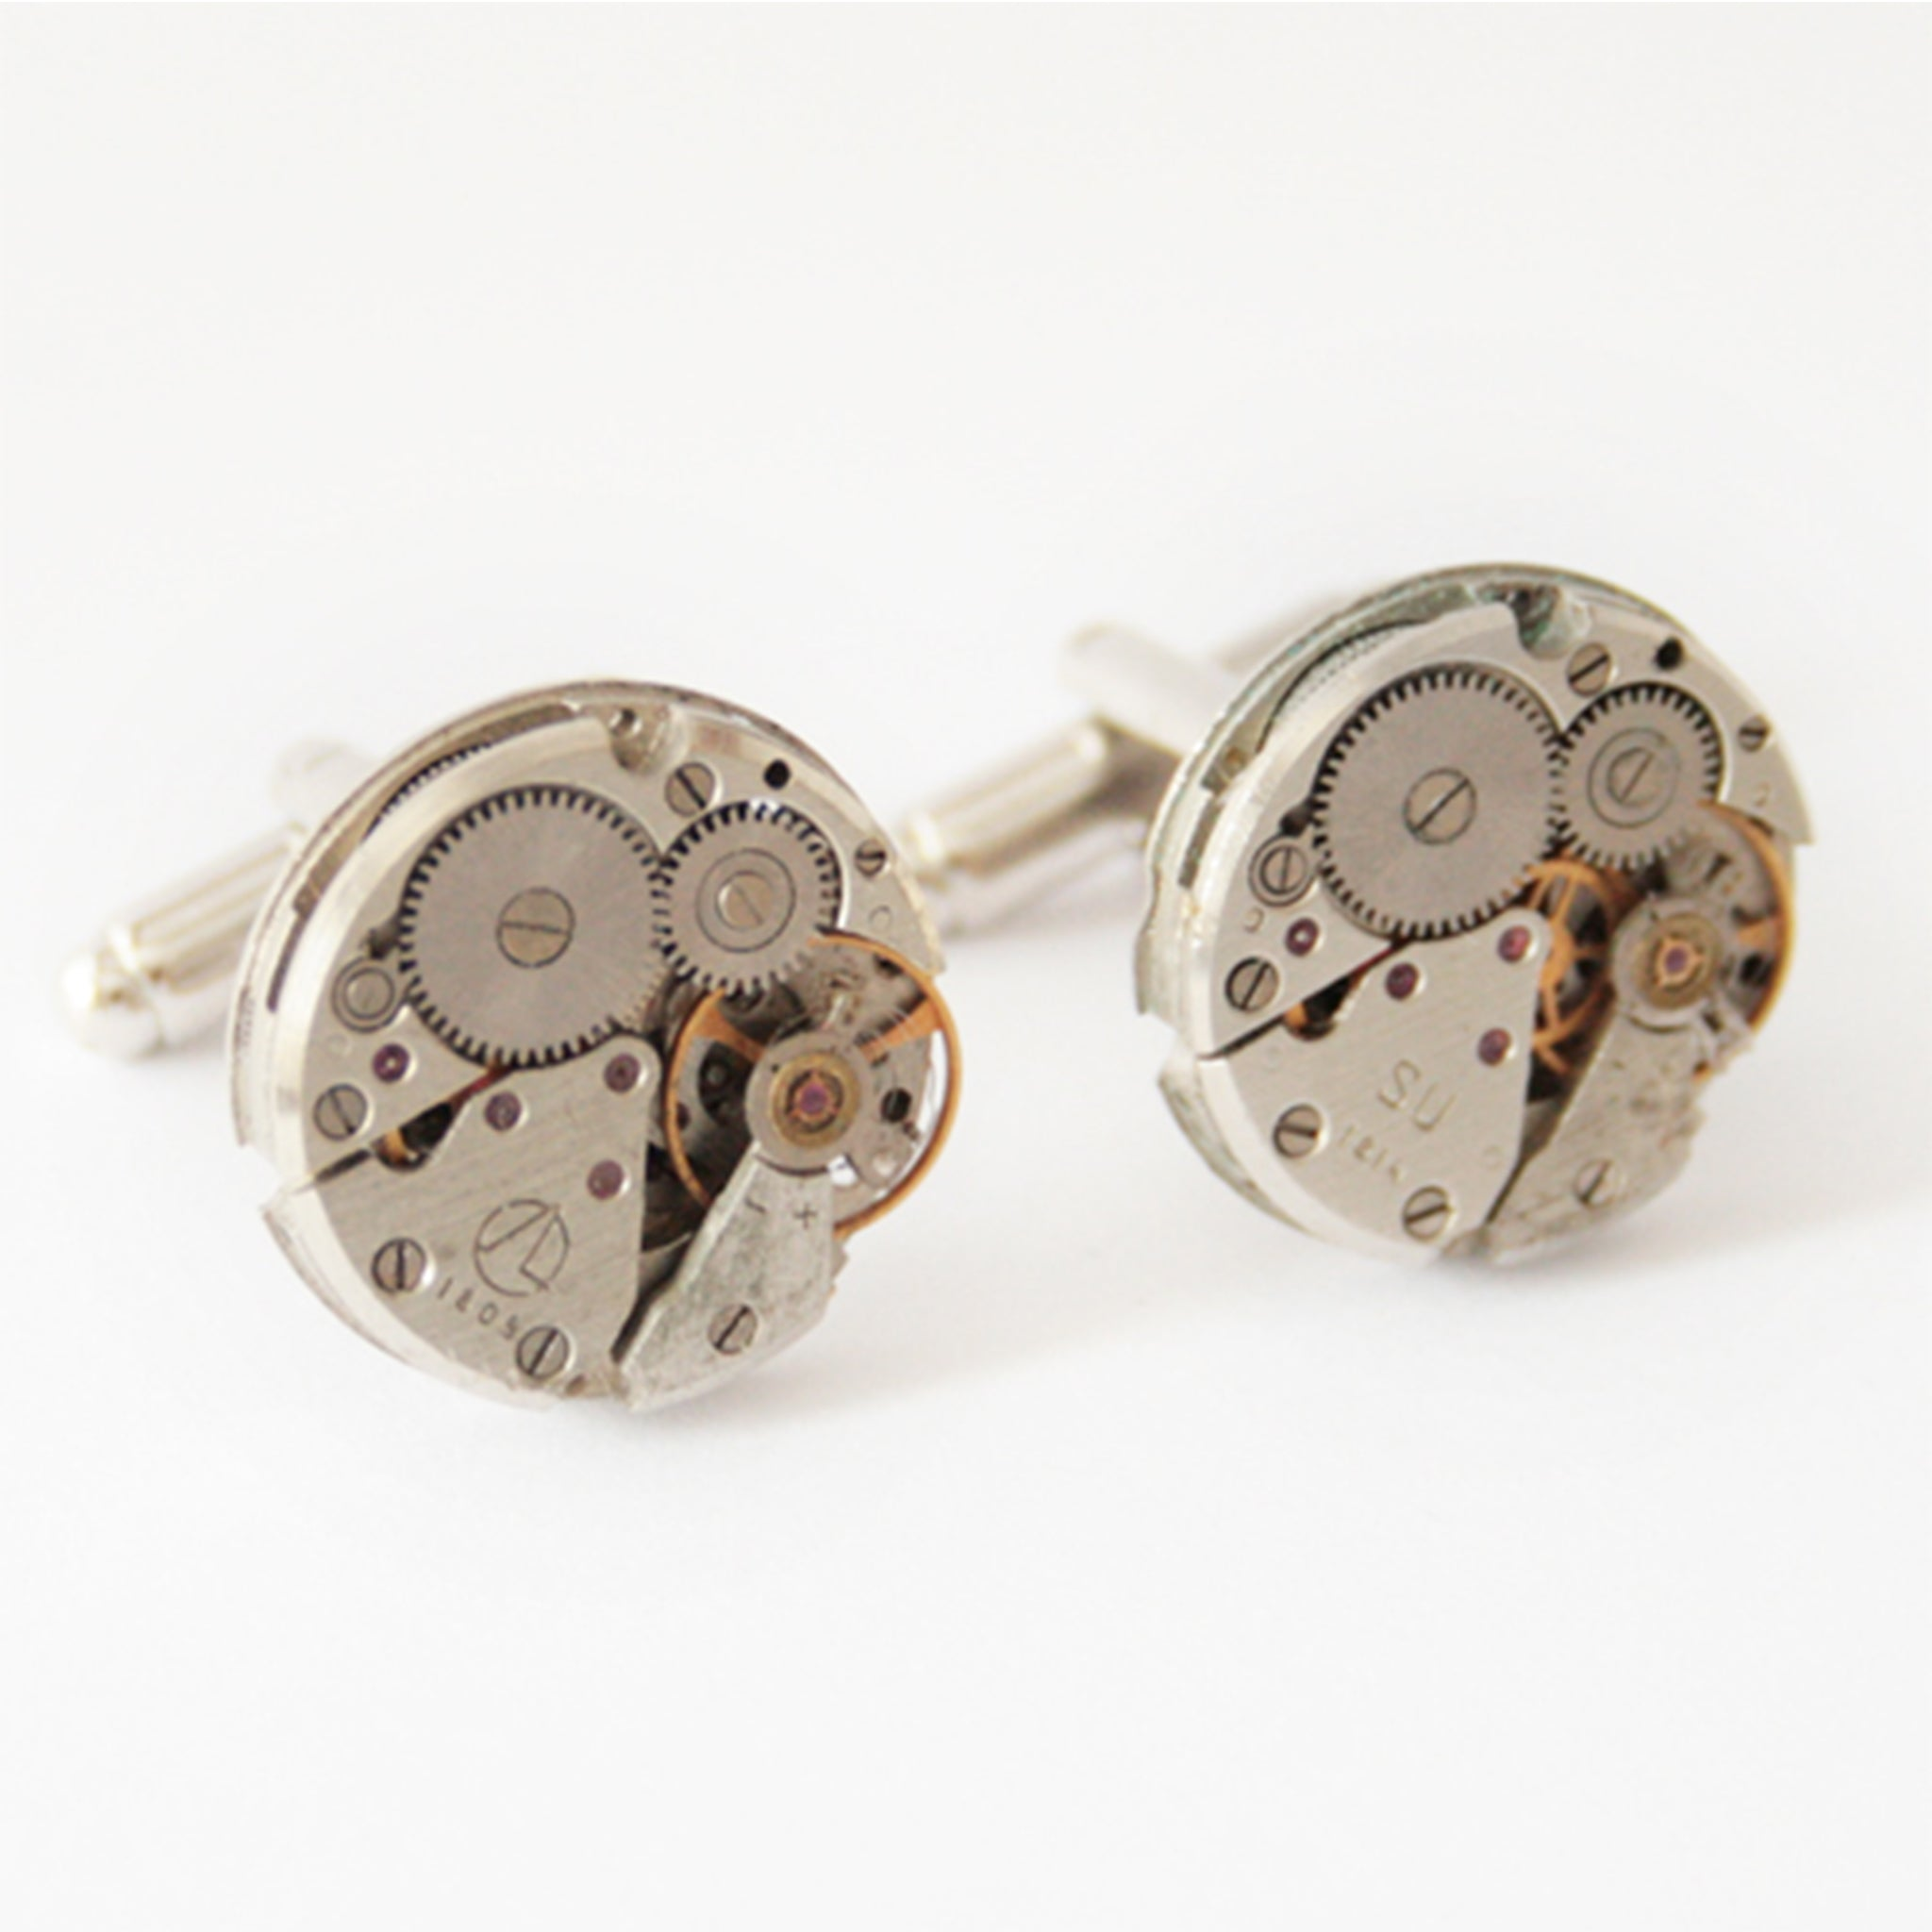 Steampunk Cufflinks for Men made of real watches